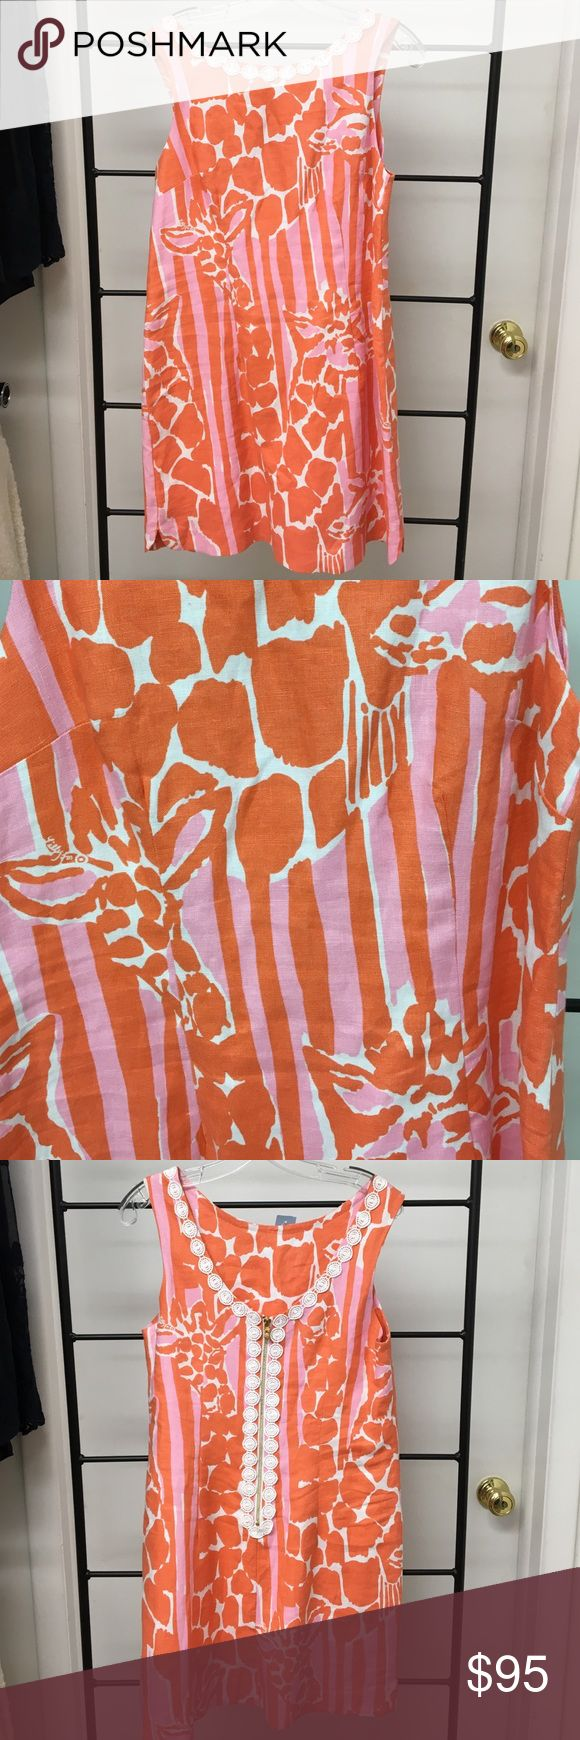 Iilly Pulitzer dress Orange and pink Lilly Pulitzer Dresses